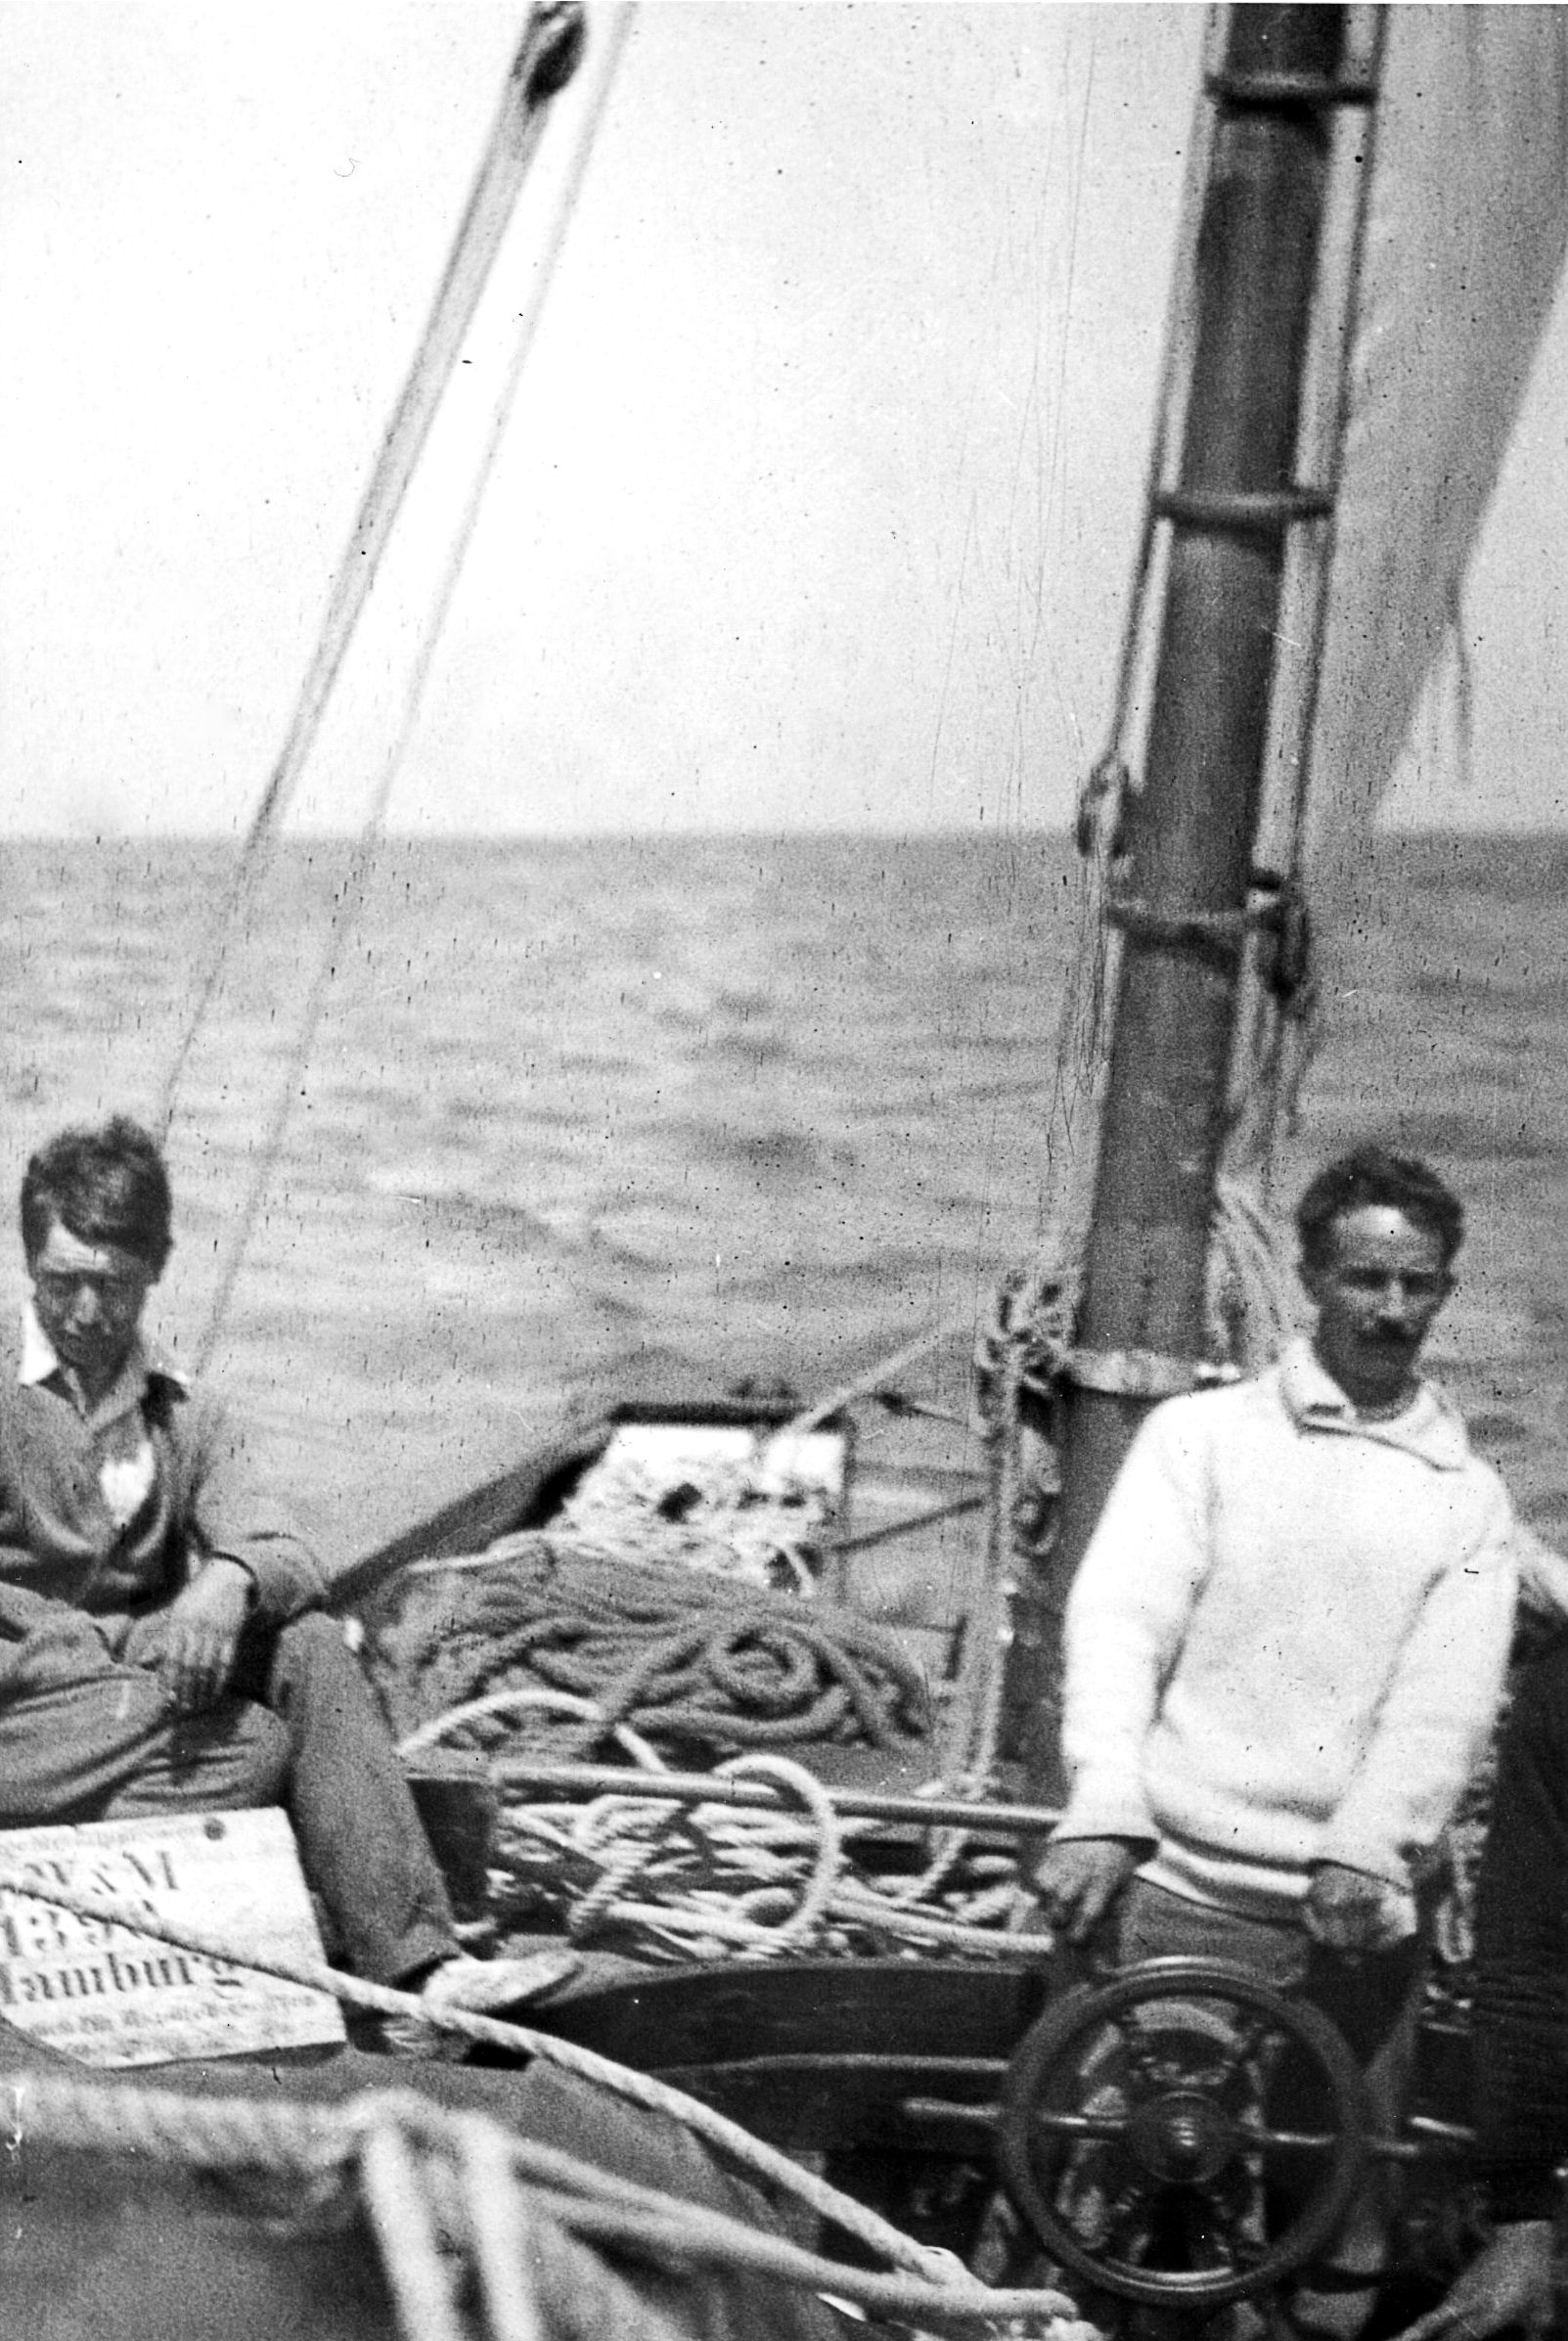 Gordan Shepard (left) And Erskine Childers (right) On Board The Asgard Howth